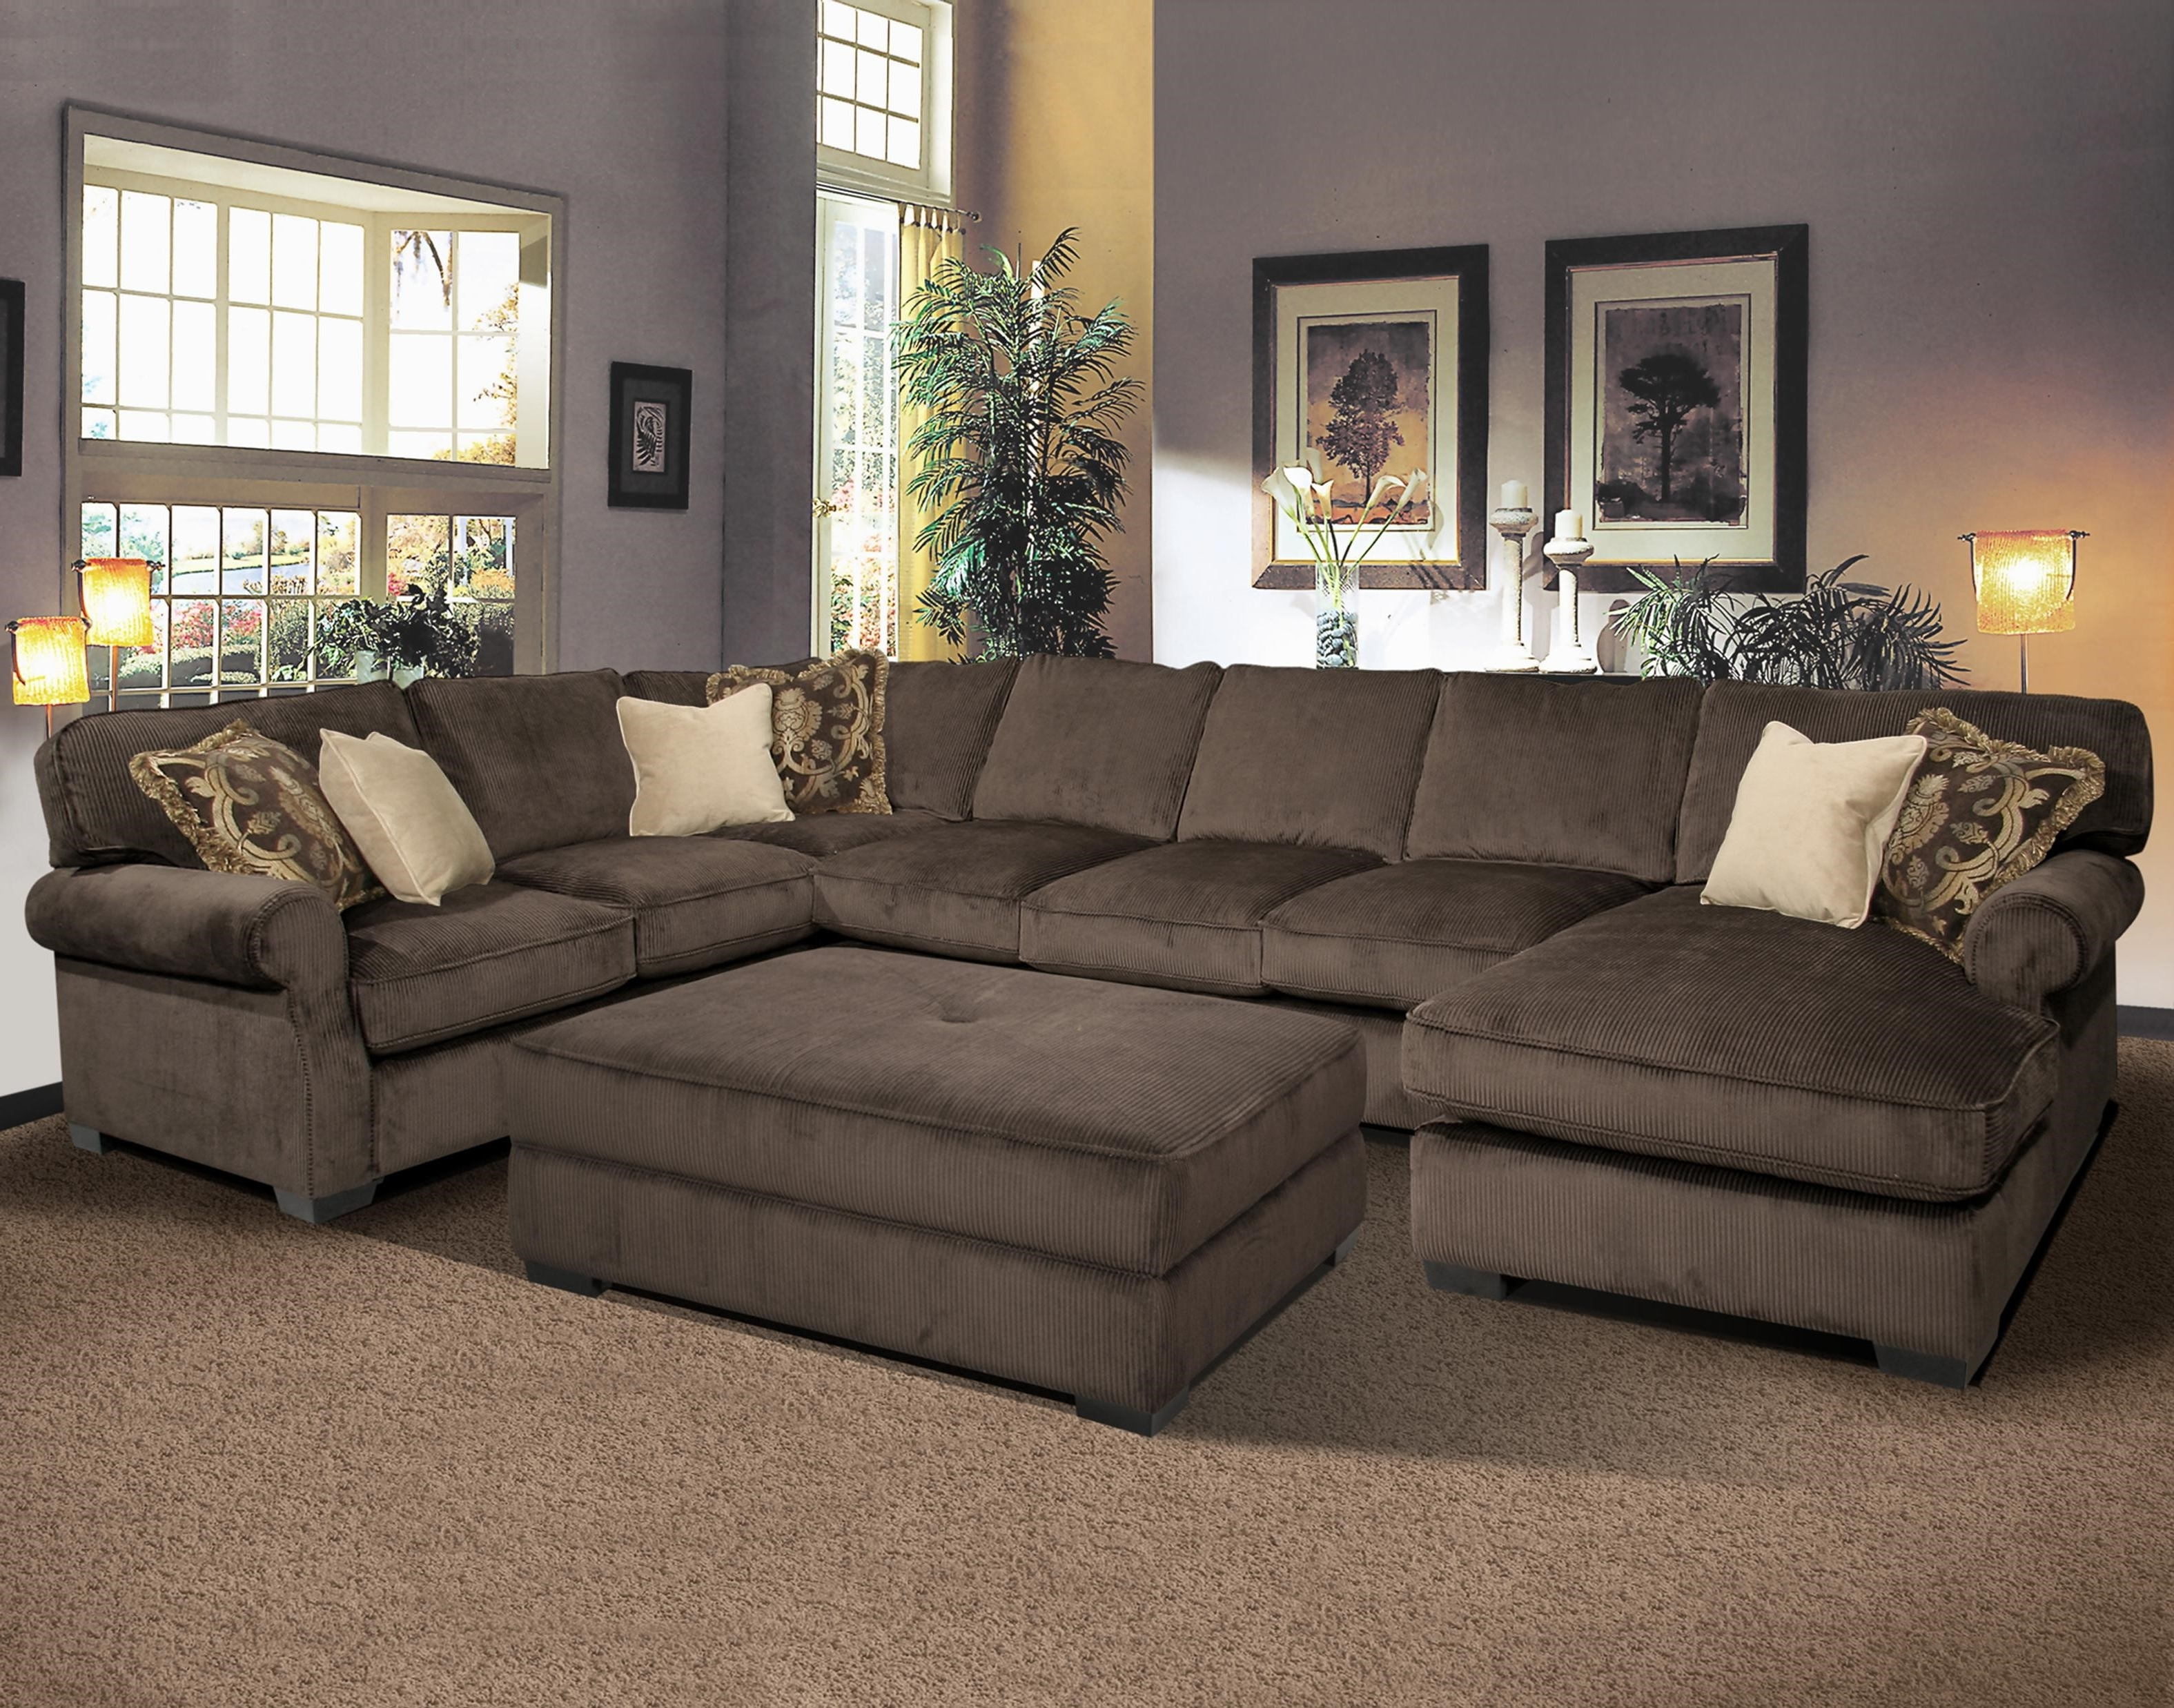 Furniture: Harbor Freight Furniture (View 3 of 20)